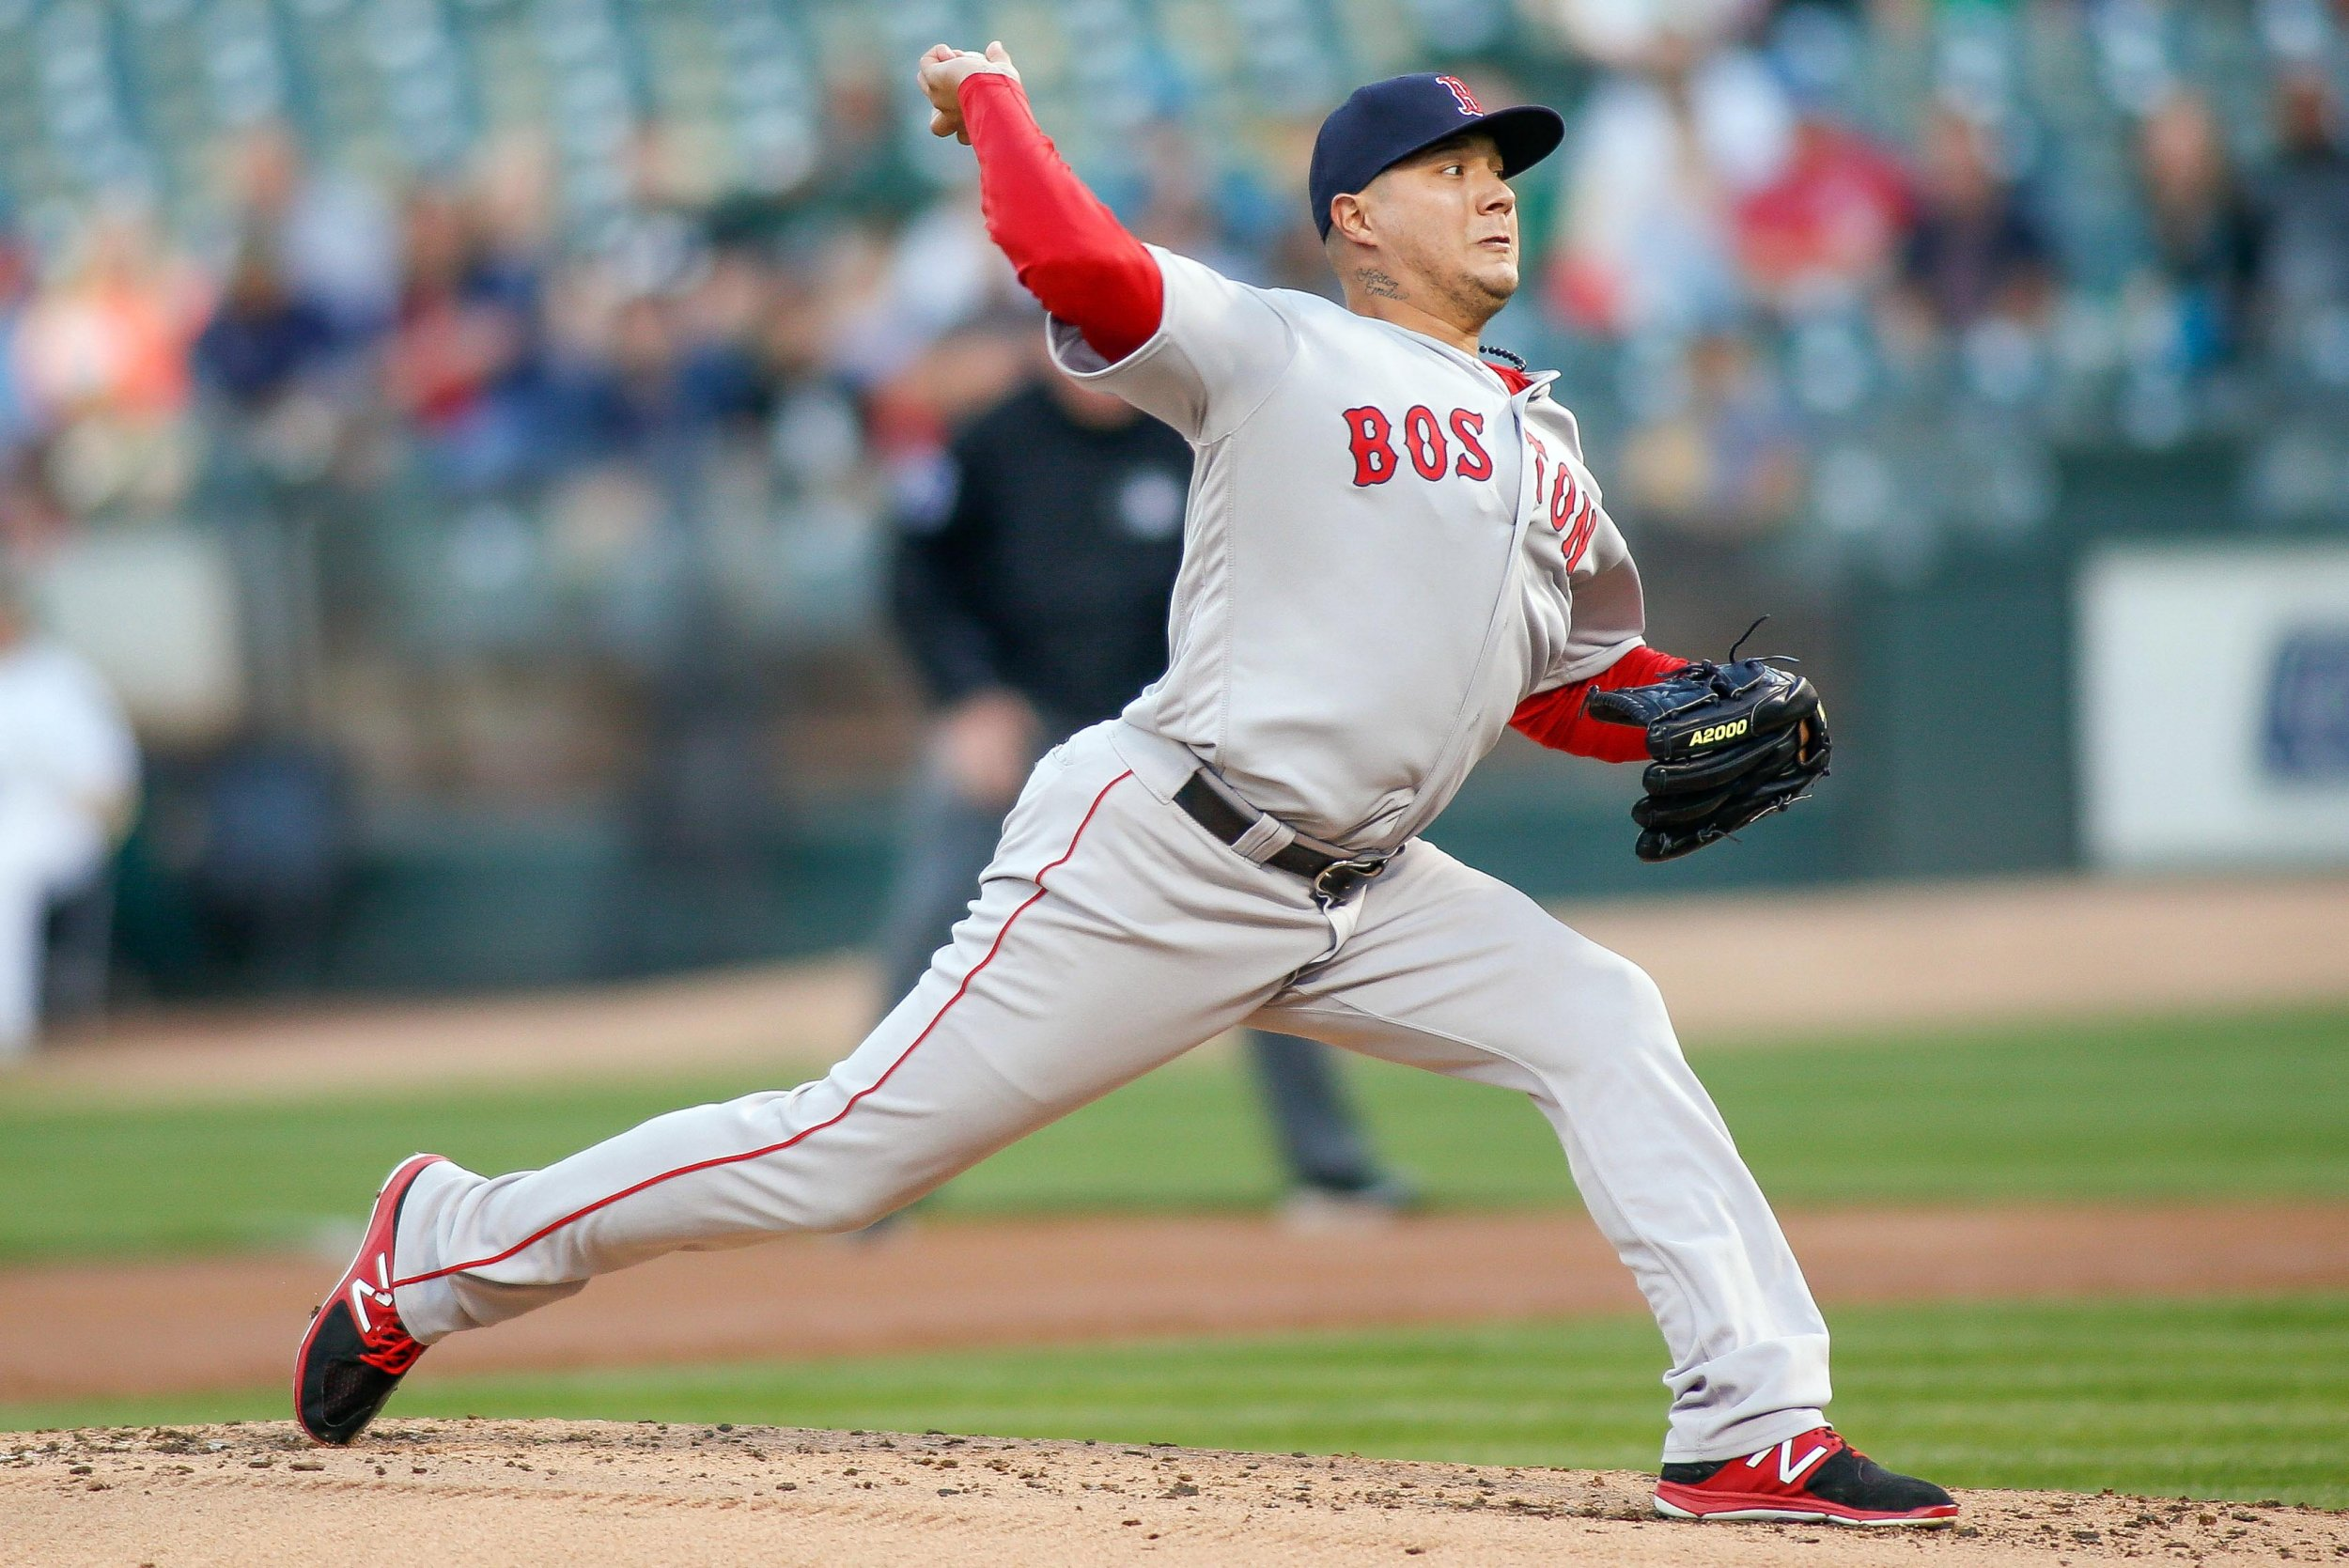 Boston Red Sox pitcher Hector Velazquez at Oakland Coliseum, California, May 18.